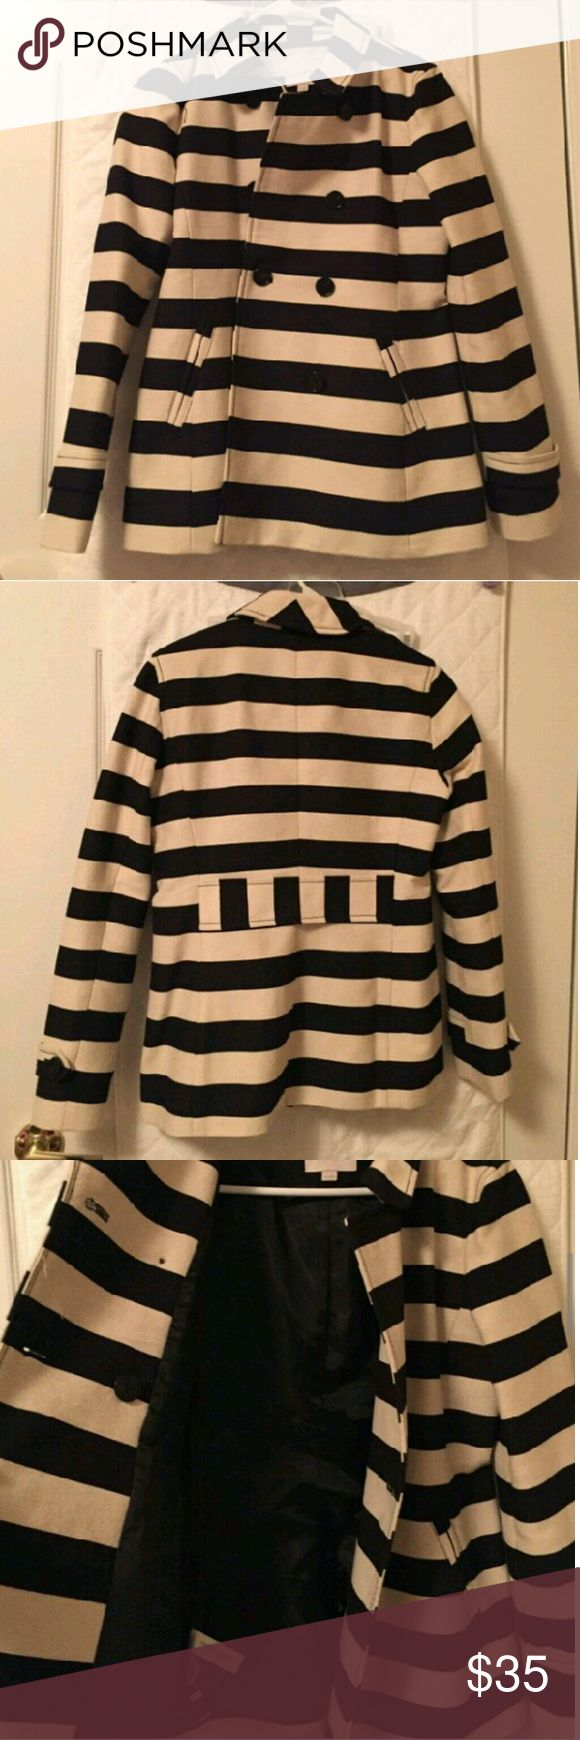 Ann Taylor Loft Striped Fall Peacoat XS Ann Taylor Loft Striped Fall Peacoat XS in very good condition. Thick, good quality material. Colors are navy and cream.  Good for fall or winter in the South, but not a thick wool coat for snowy winters. LOFT Jackets & Coats